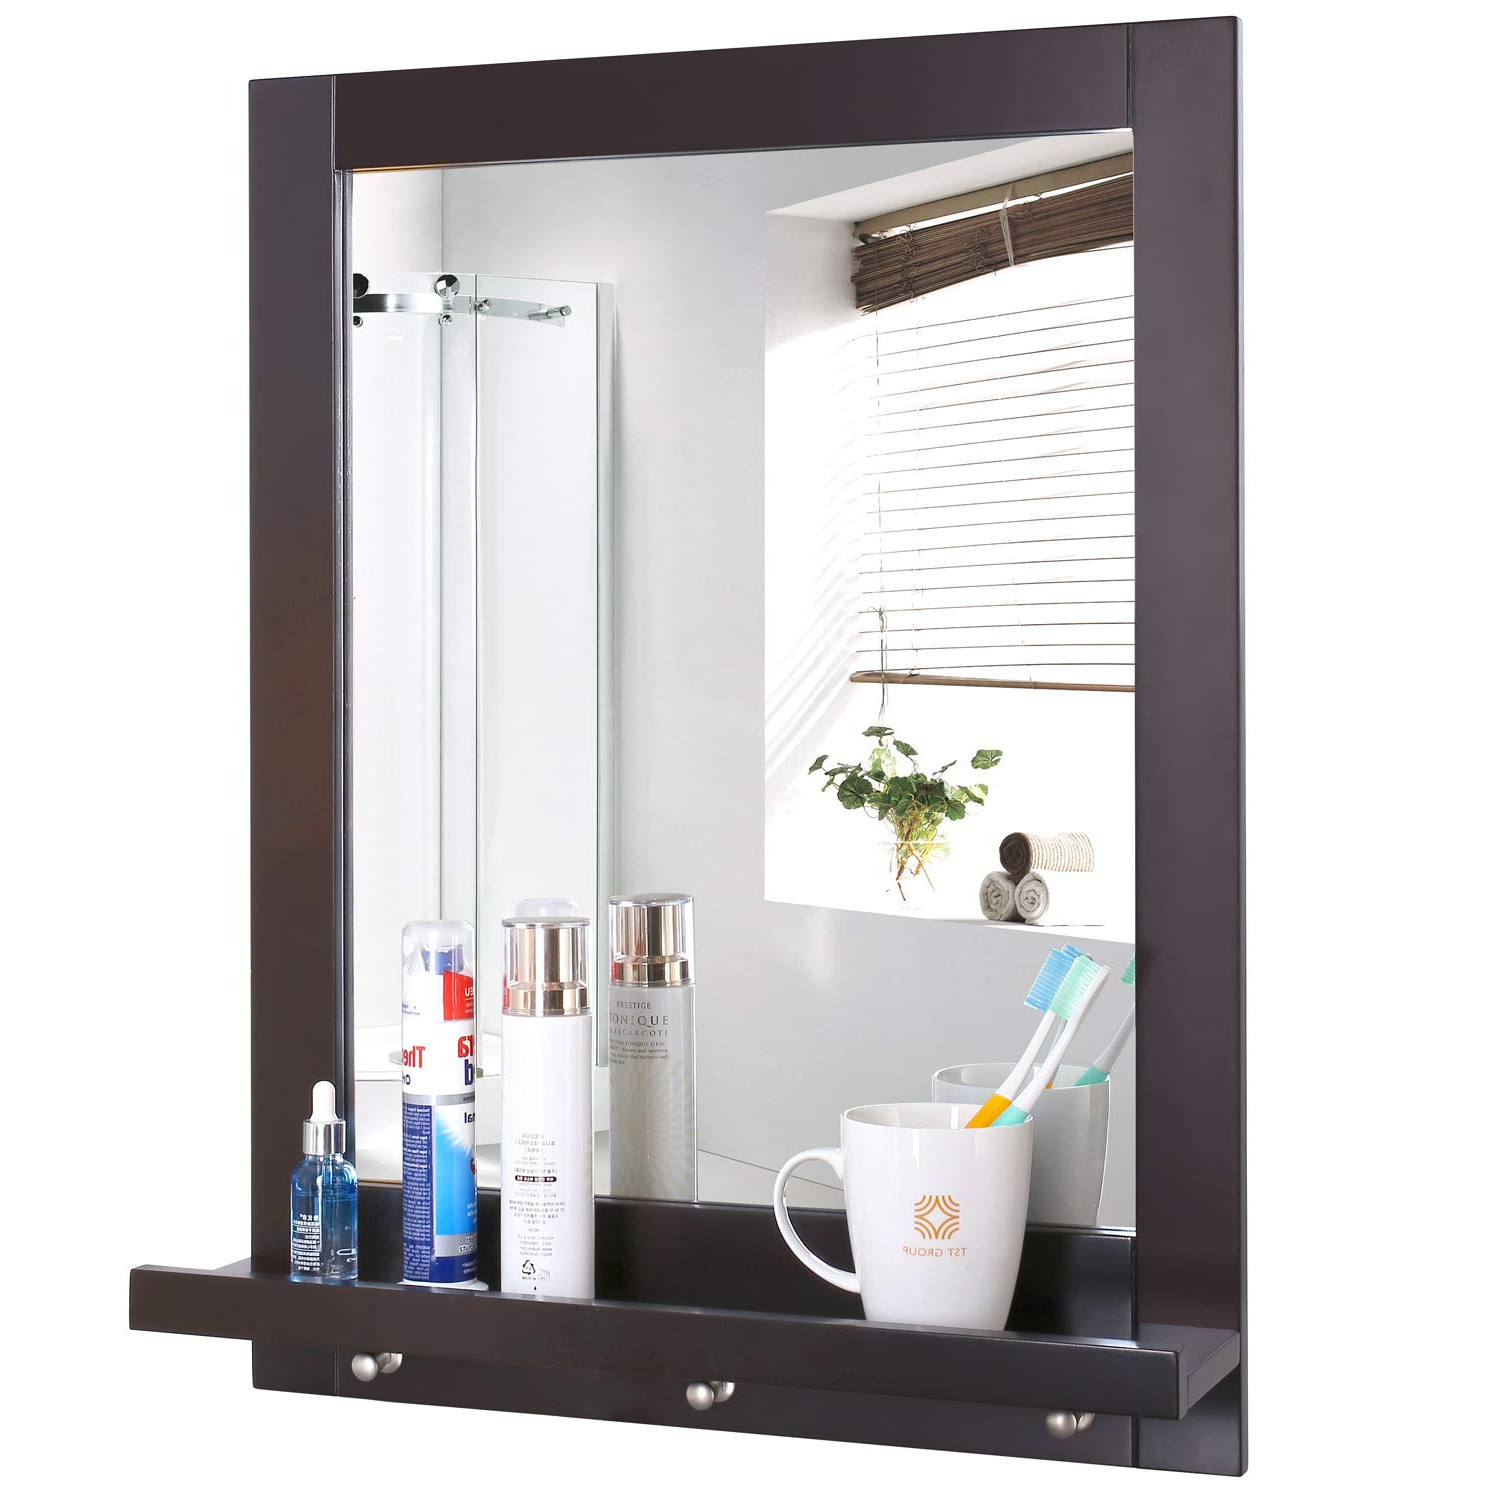 Homfa Bathroom Wall Mirror Vanity Mirror Makeup Mirror Framed Mirror With Shelf And 3 Hanging Hooks Multipurpose For Home, Dark Brown Regarding Most Popular Wall Mirrors With Shelf (Gallery 15 of 20)